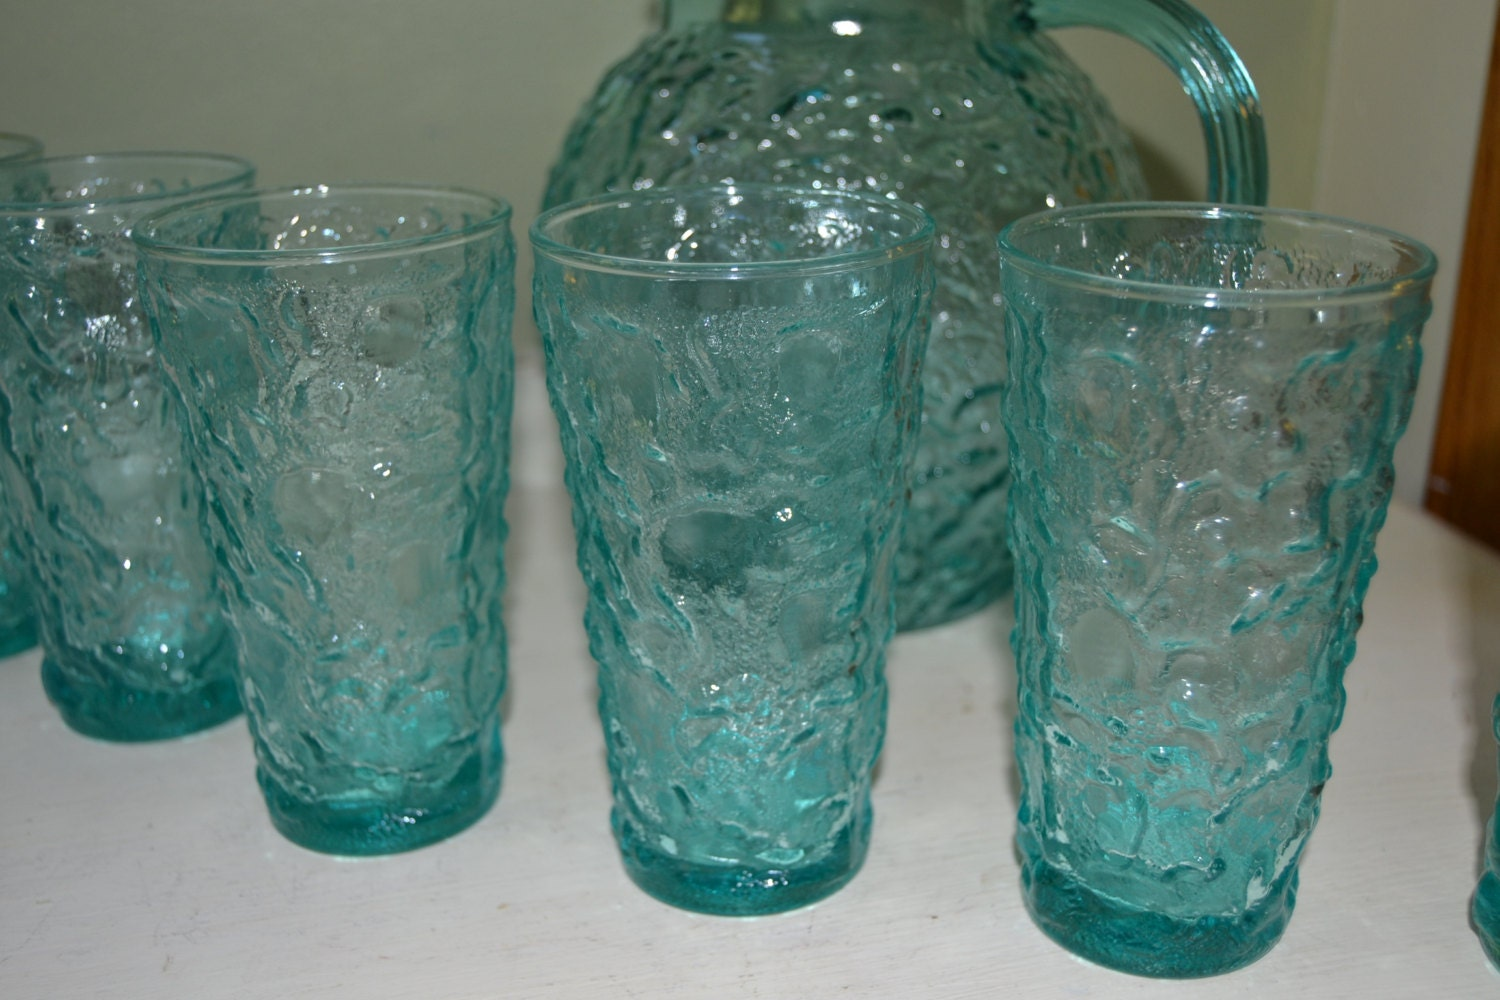 Vintage Pitcher Aqua Blue Glass Pitcher Amp Glass Set By